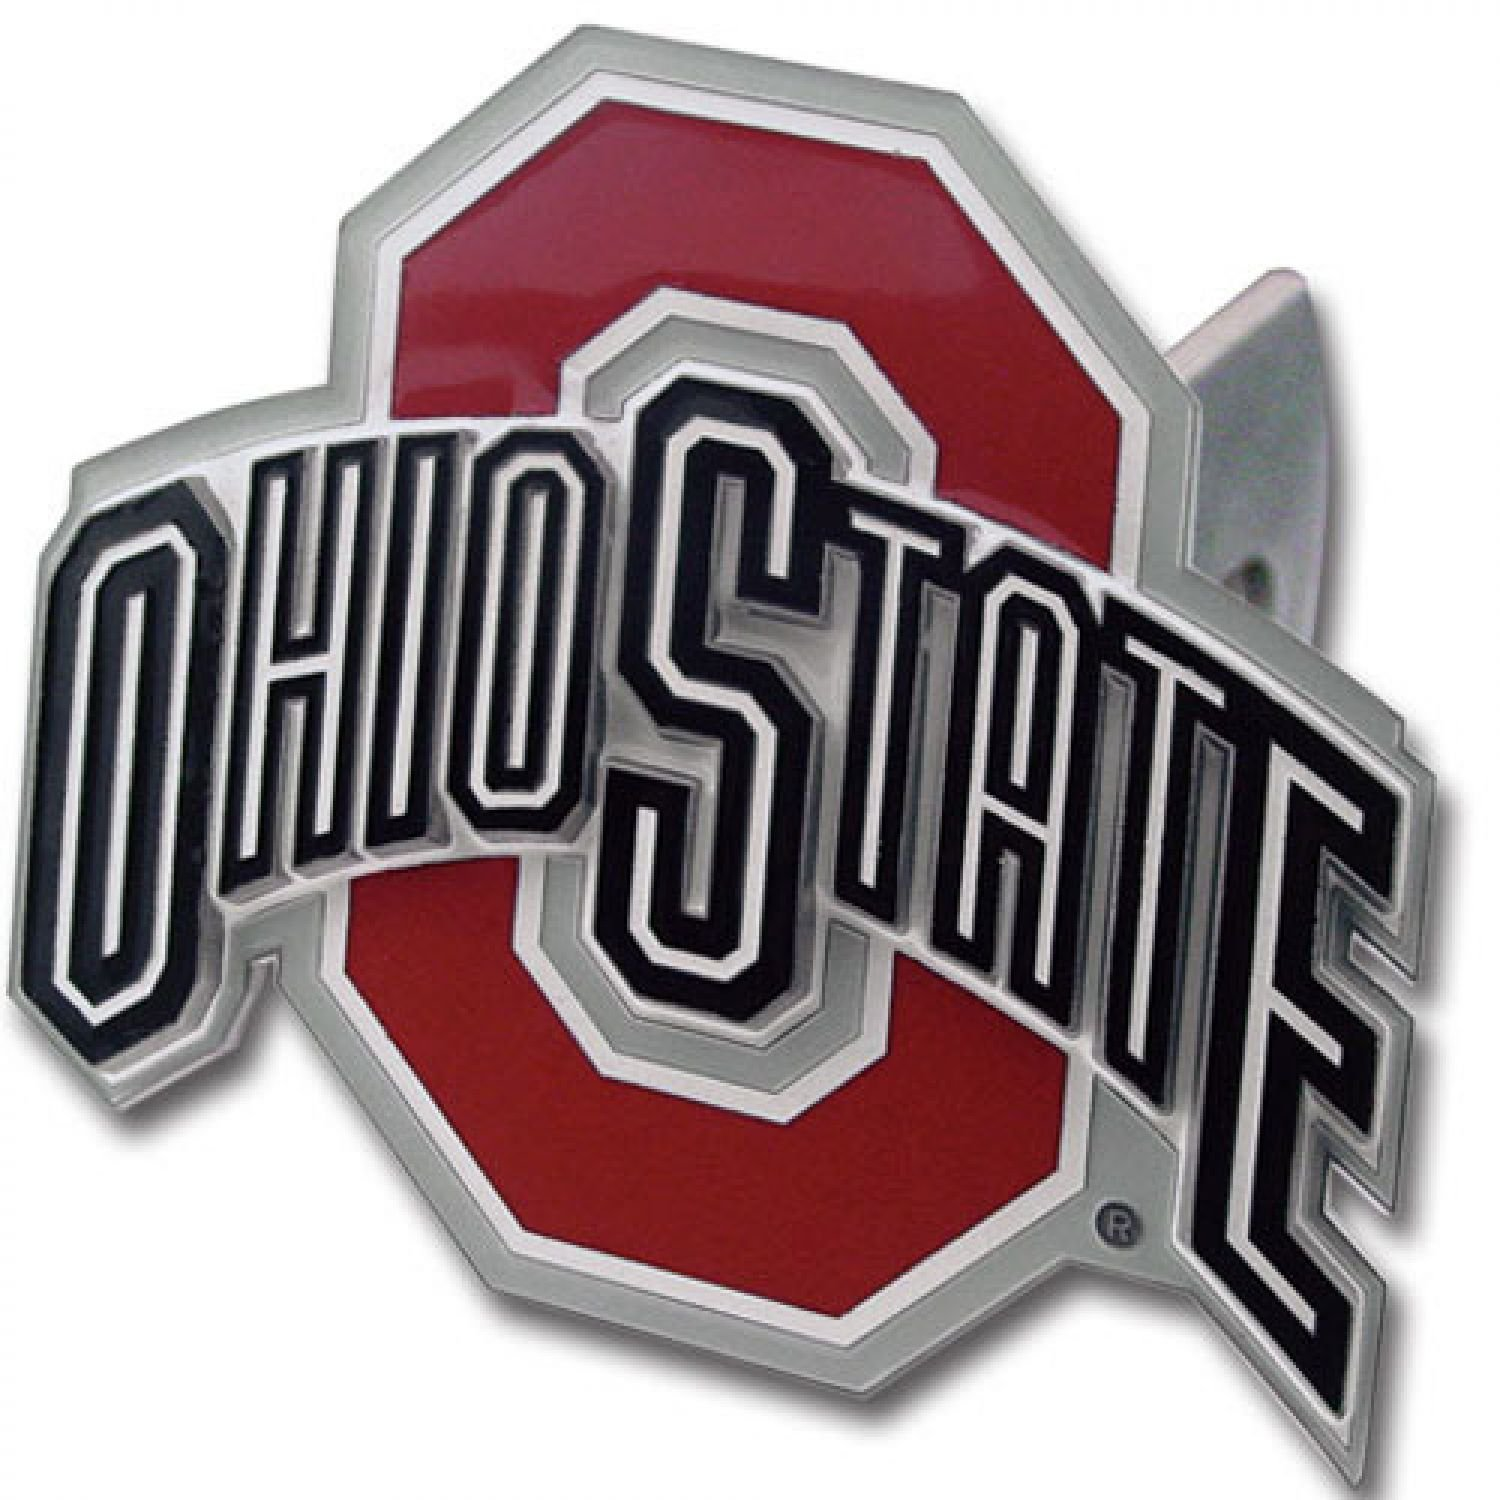 Ohio State Buckeyes Logo-Only Trailer Hitch Cover